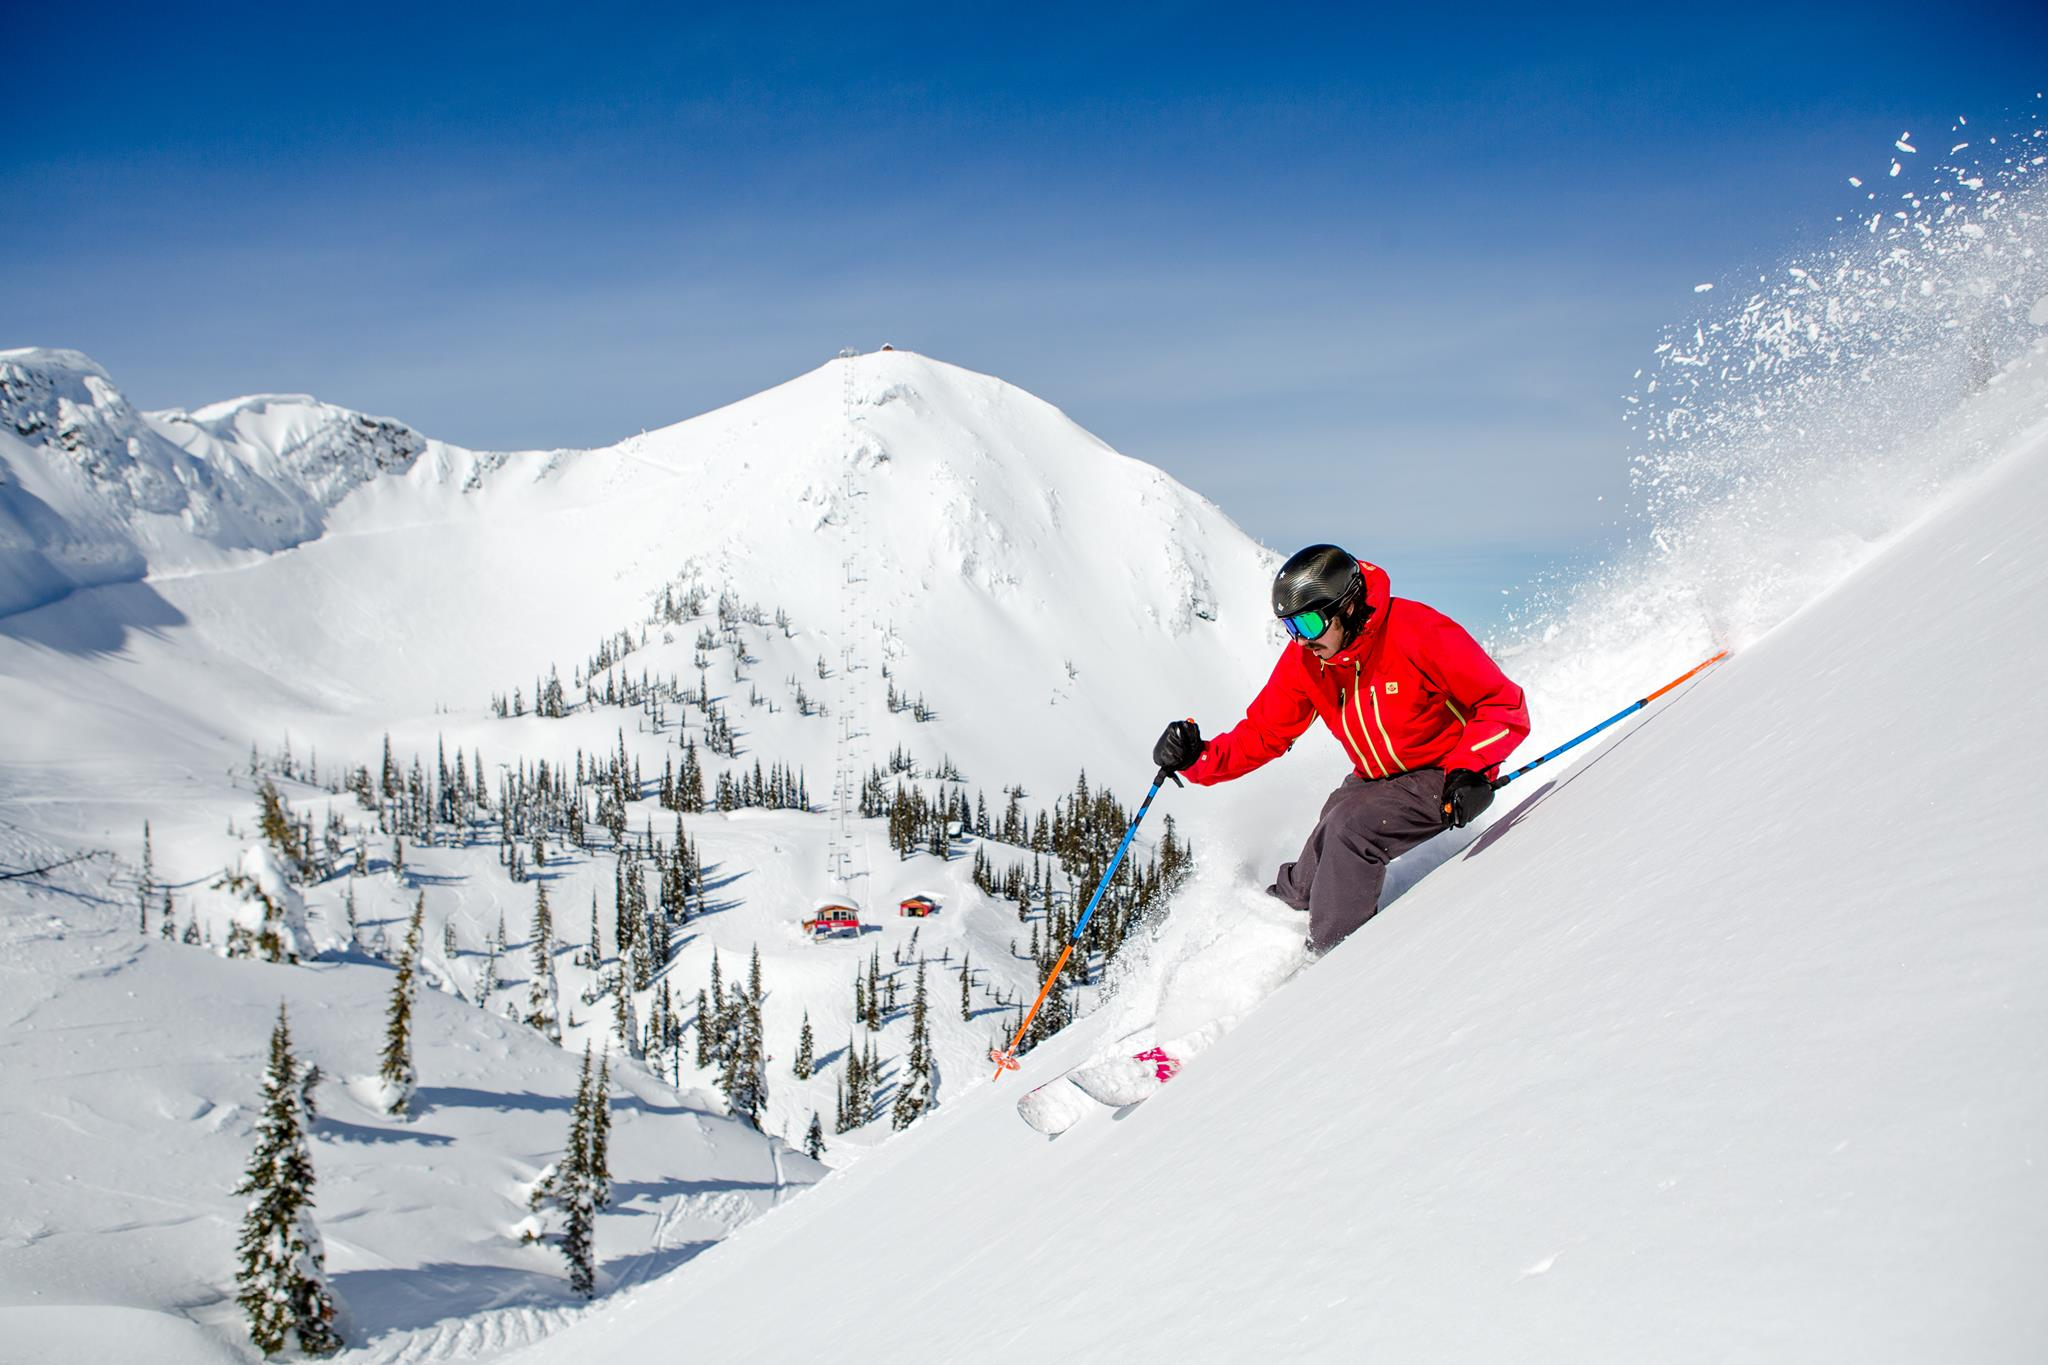 Fernie Chamber praises ski season for increased hotel stays, business revenue